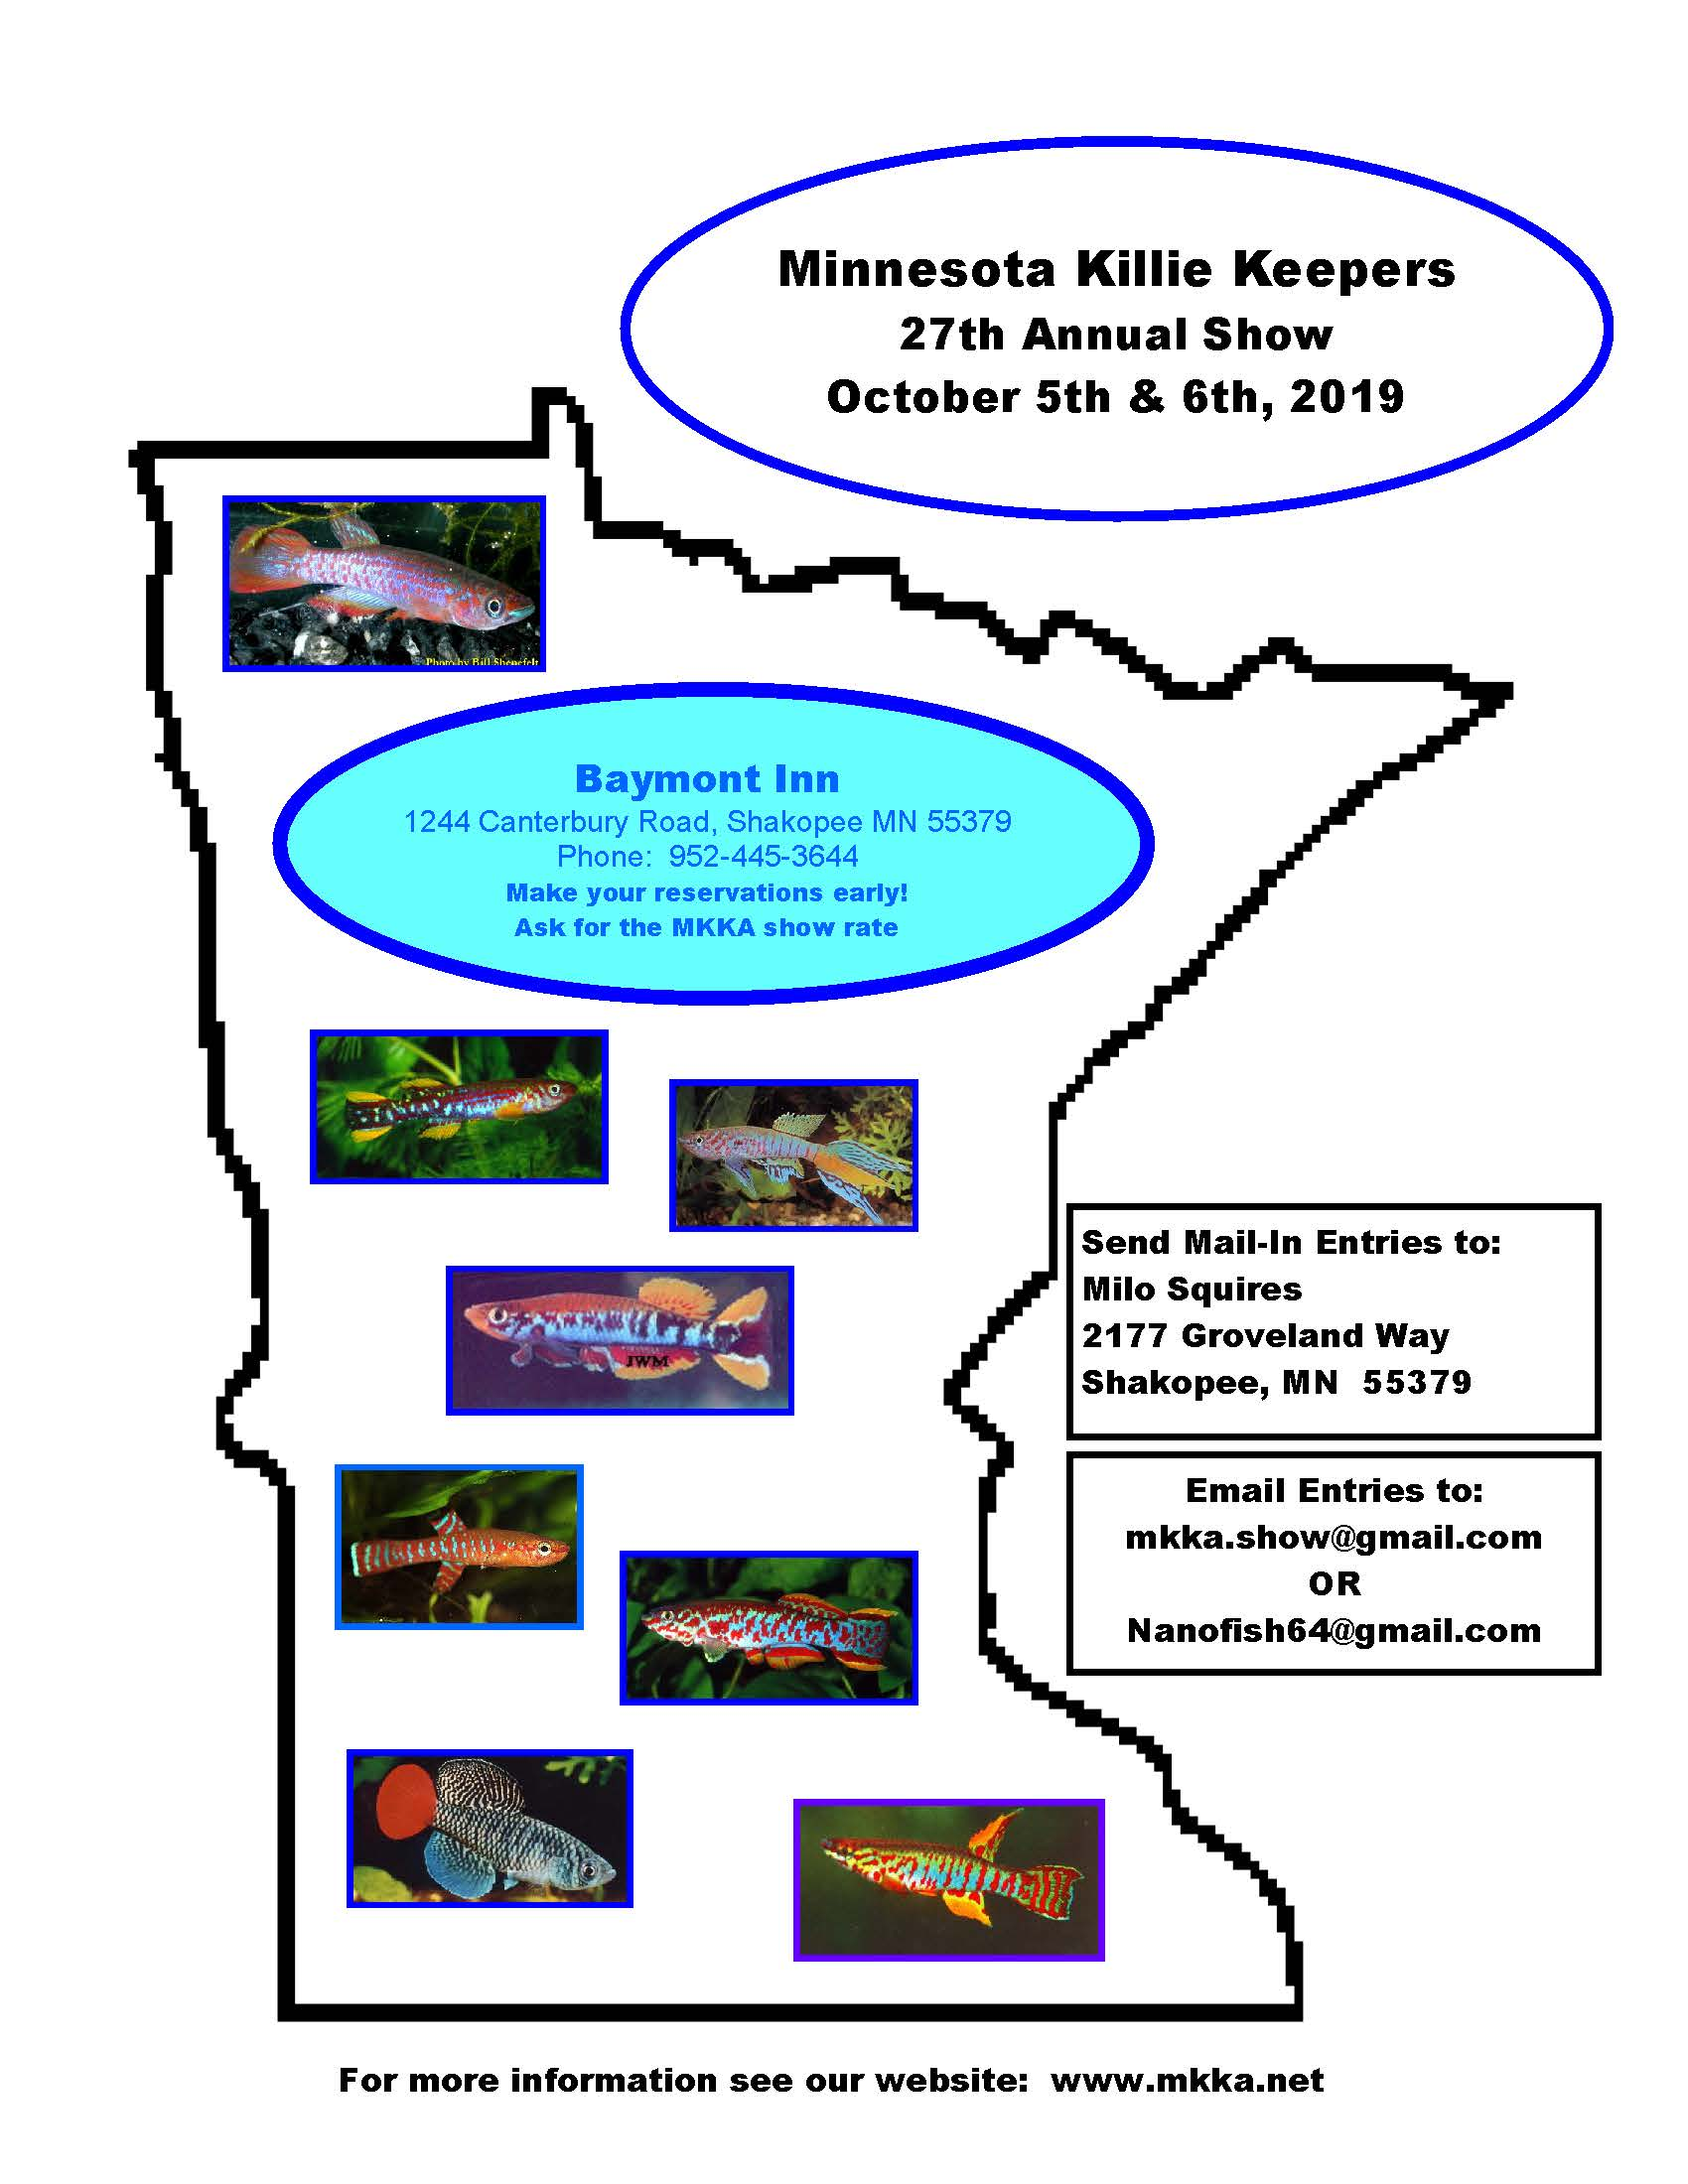 MKKA 27th Annual Show - October 5-6, 2019 - Shakopee, Mn